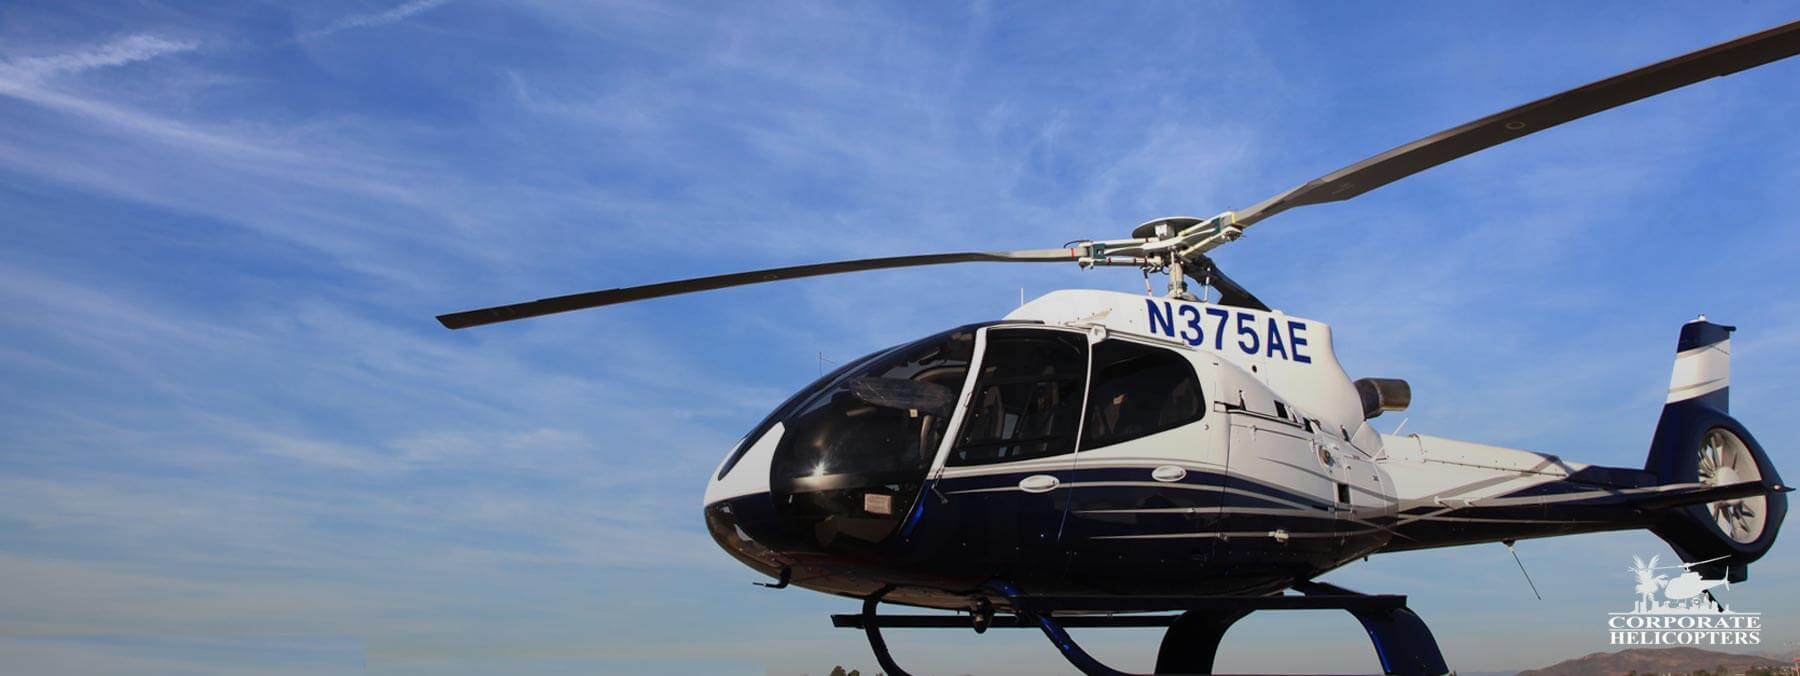 Corporate Helicopters of San Diego has both new and previously-owned helicopters for sale